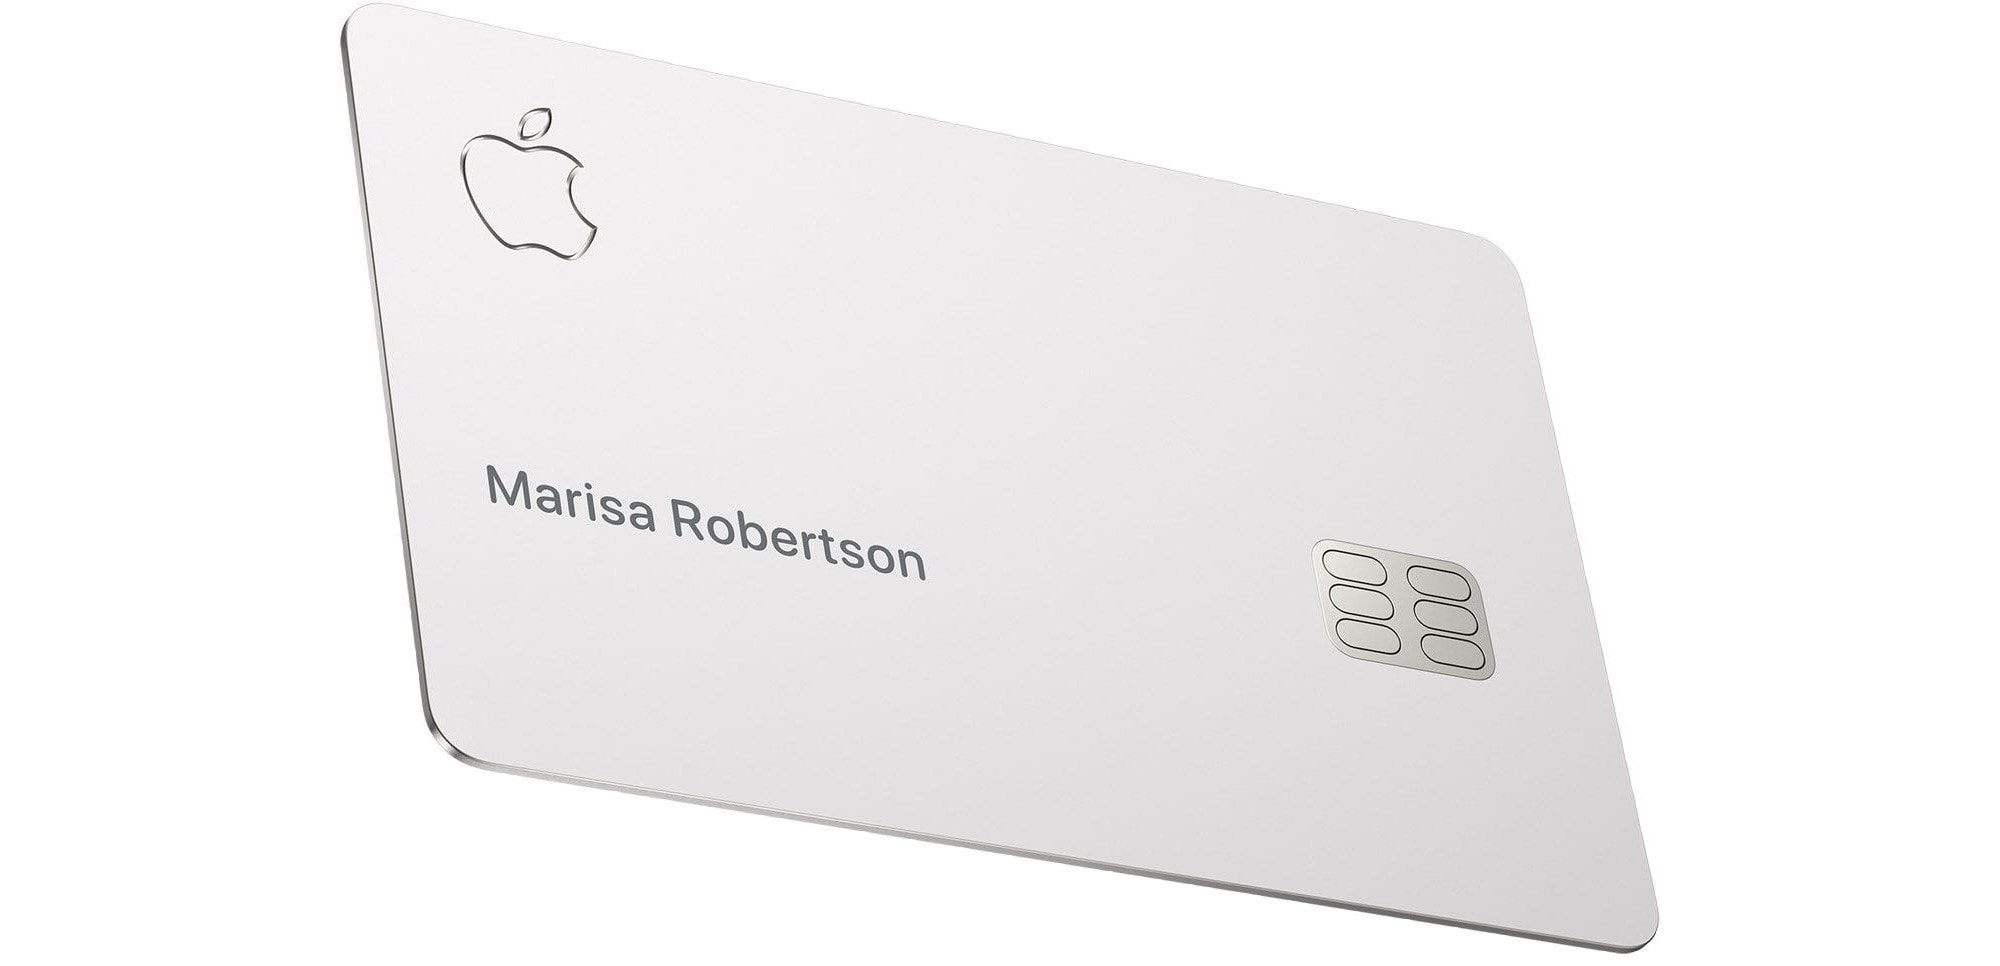 Making Apple Card payments is as simple as its design.